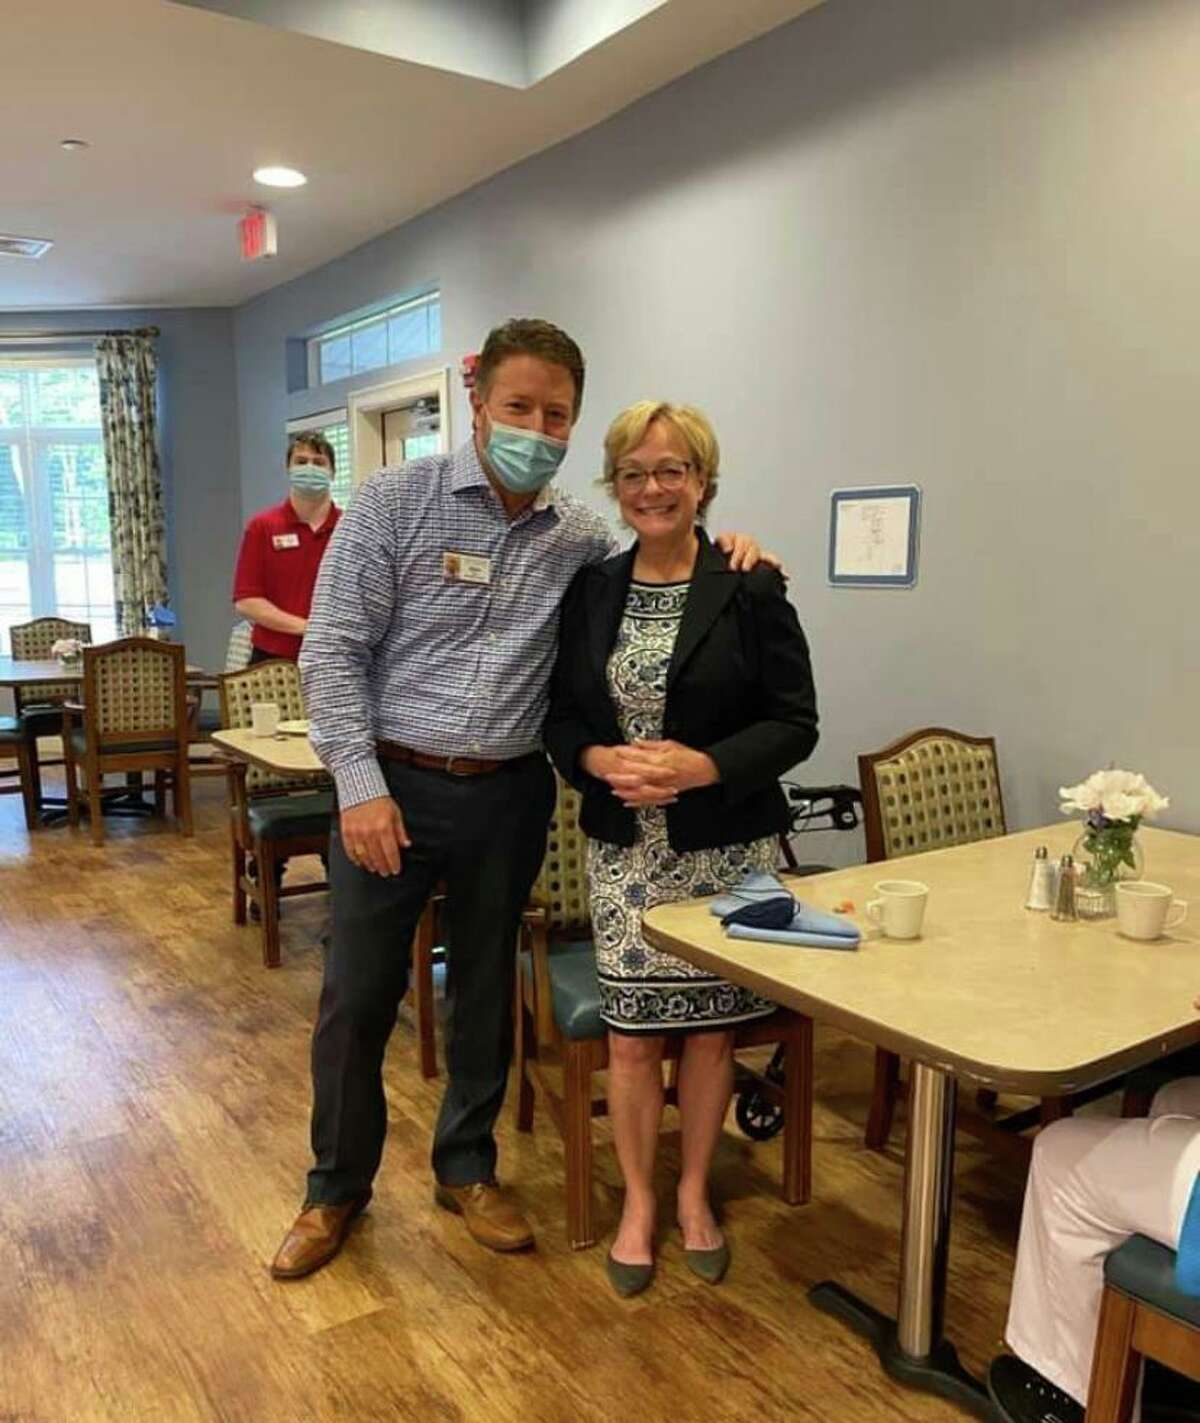 Keystone Place at Newbury Brook in Torrington celebrated Assisted Living Week Sept. 13 with a breakfast for first responders. Pictured is Maor Elinor Carbone with Keystone Place's Executive Director, Allen Miloff.